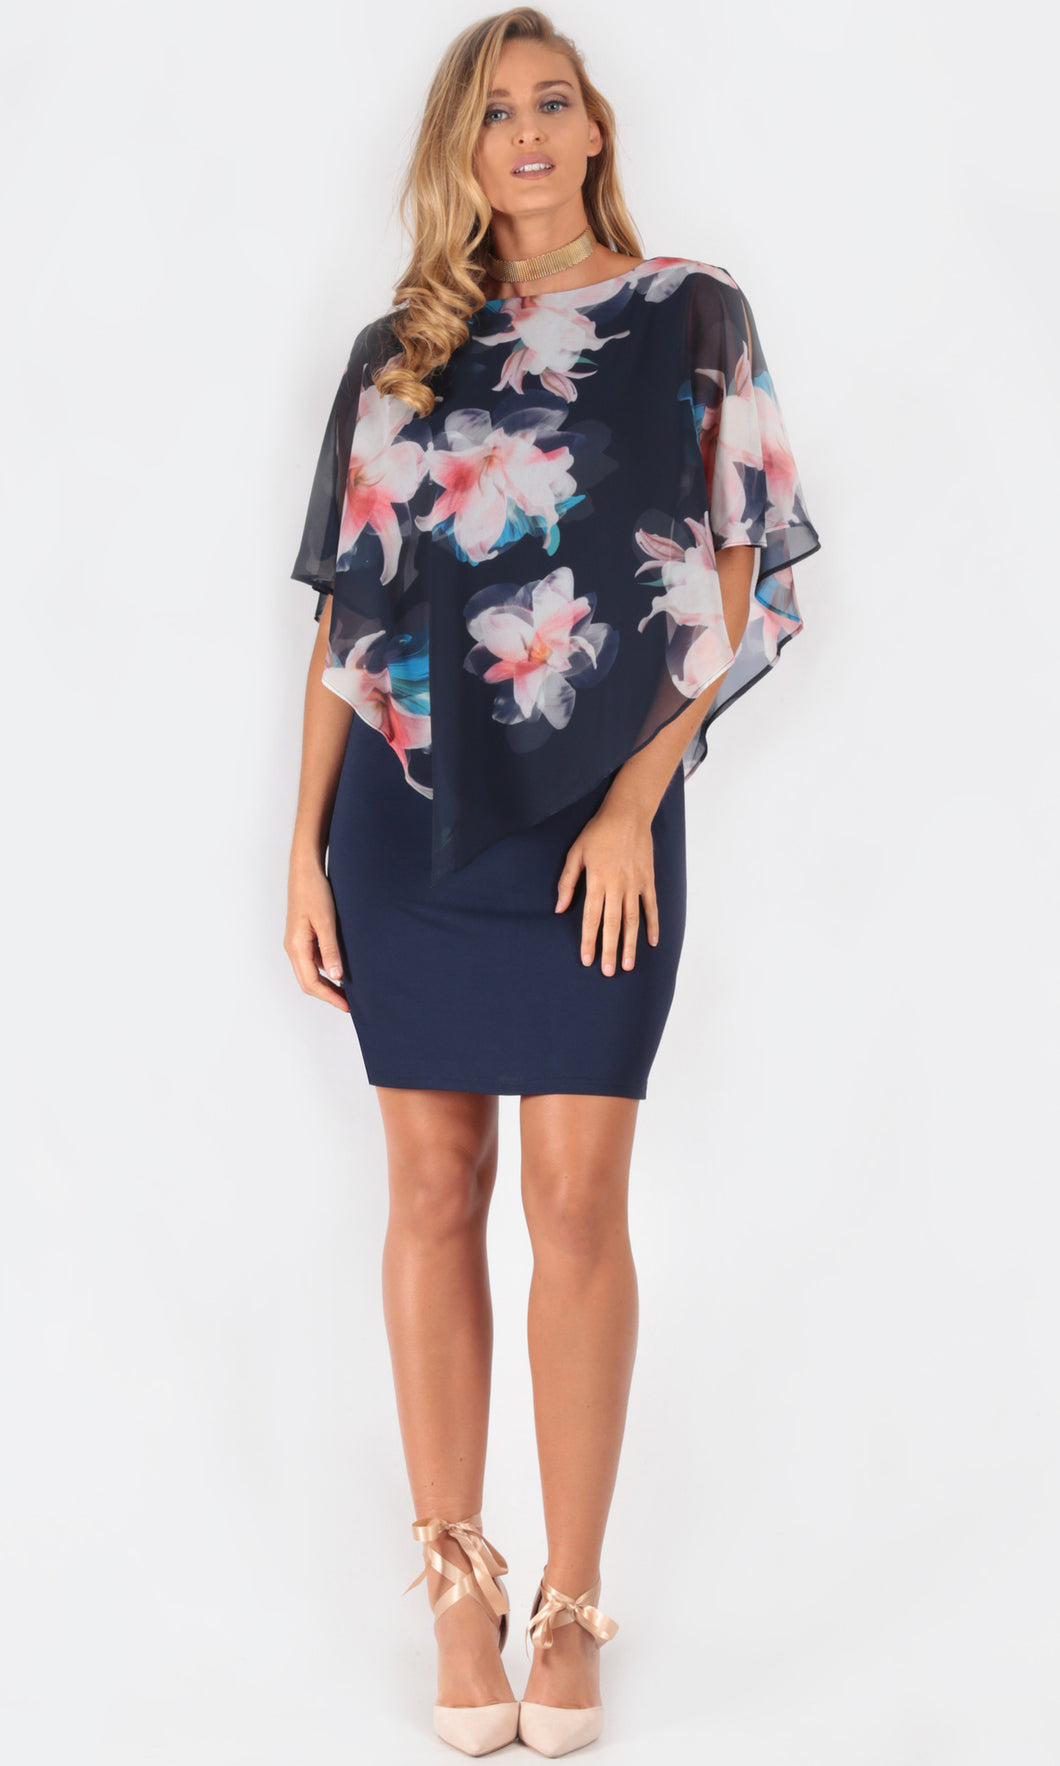 Blues and Pinks Floral Chiffon Overlay Dress